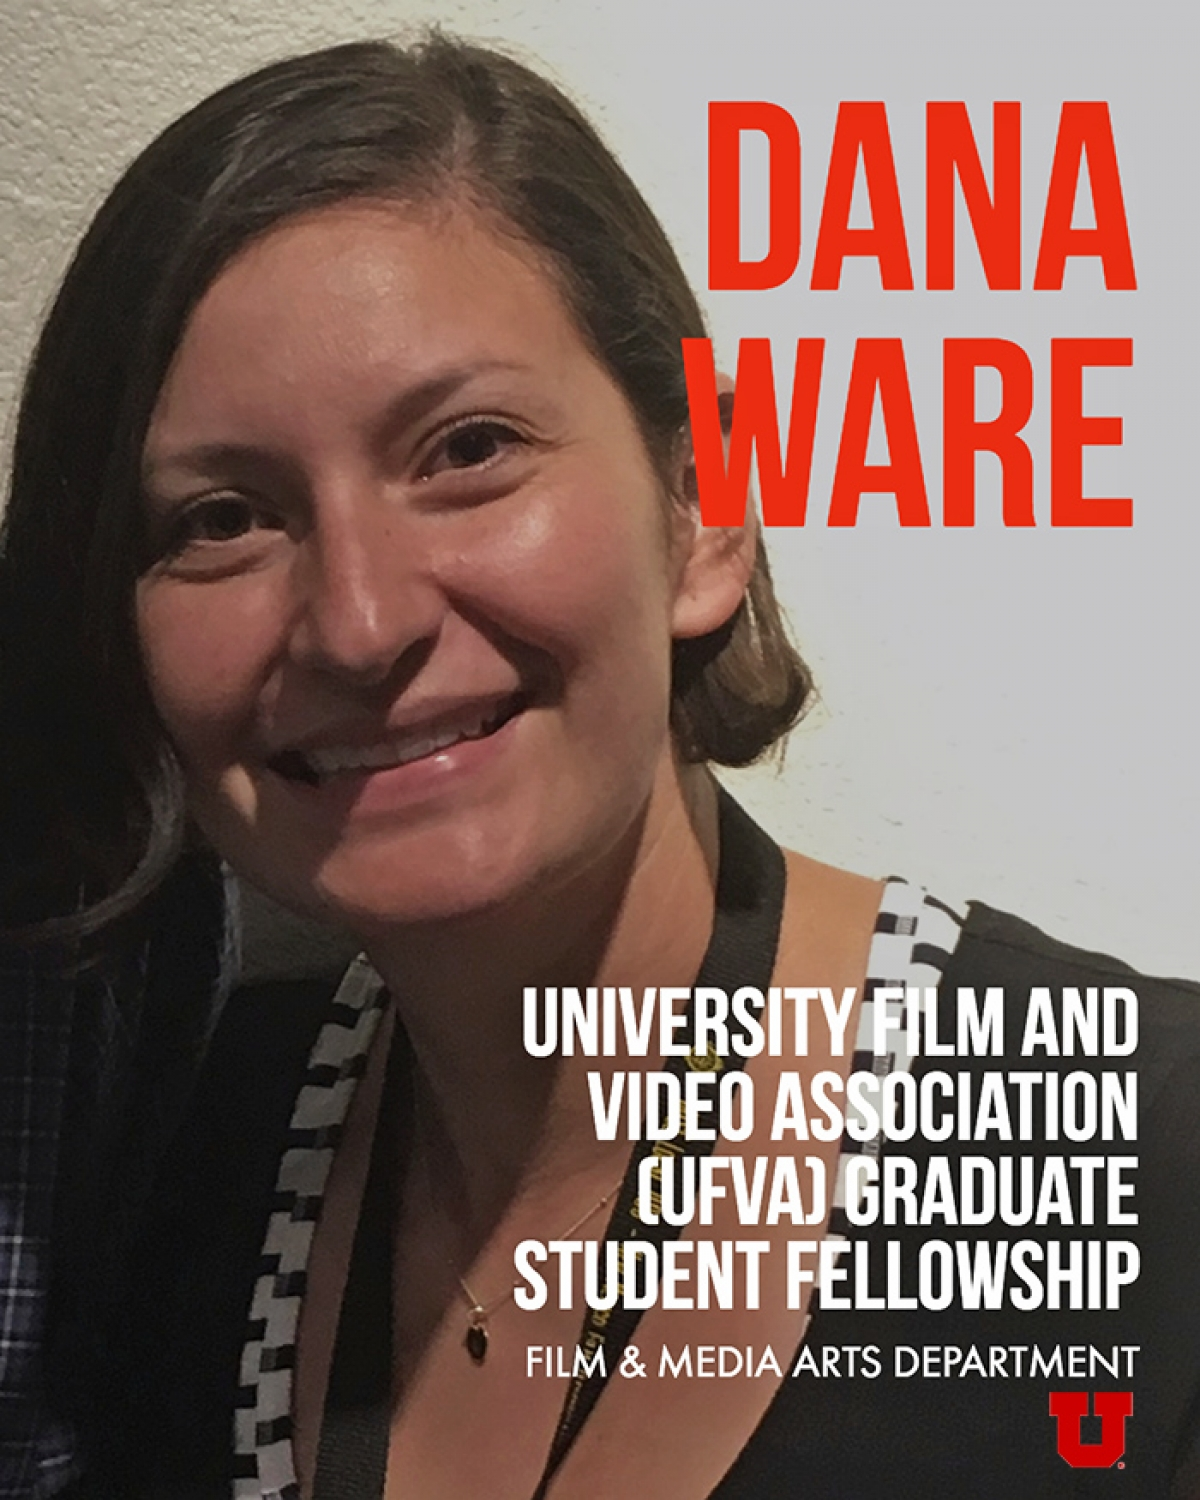 Film and Media Arts first year graduate student, Dana Ware receives the prestigious University Film and Video Association (UFVA) Graduate Student Fellowship